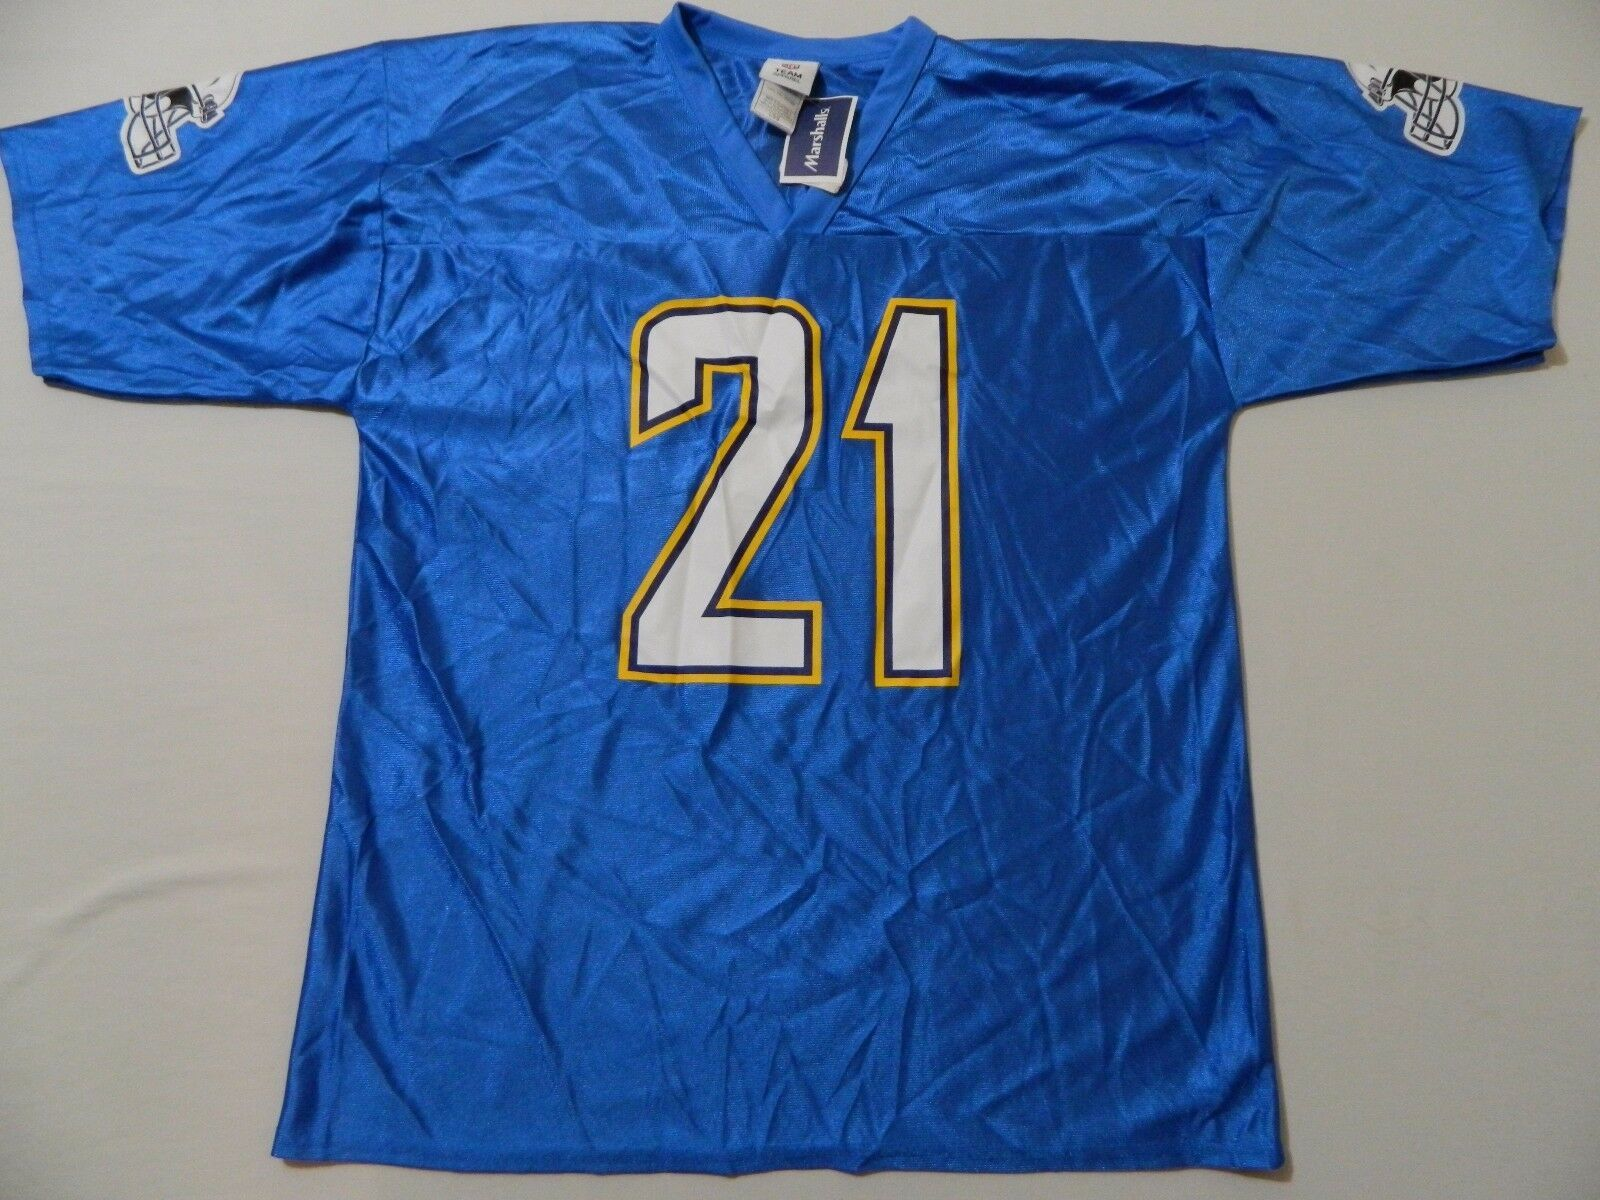 Primary image for M74 New NFL San Diego Chargers LaDainian Tomlinson Blue Jersey MEN'S Sizes